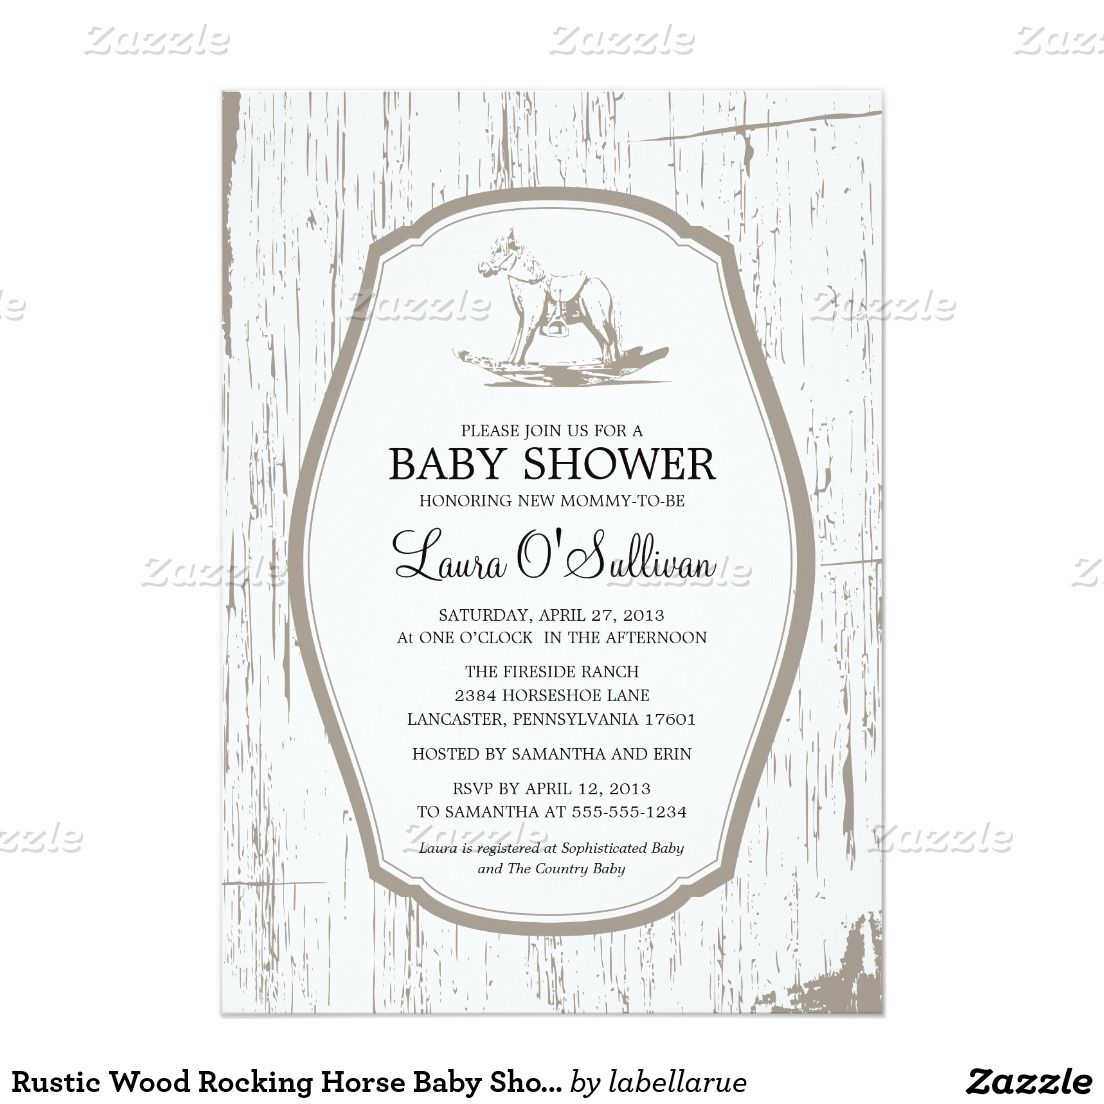 Rustic Wood Rocking Horse Baby Shower Card | Horse baby showers ...